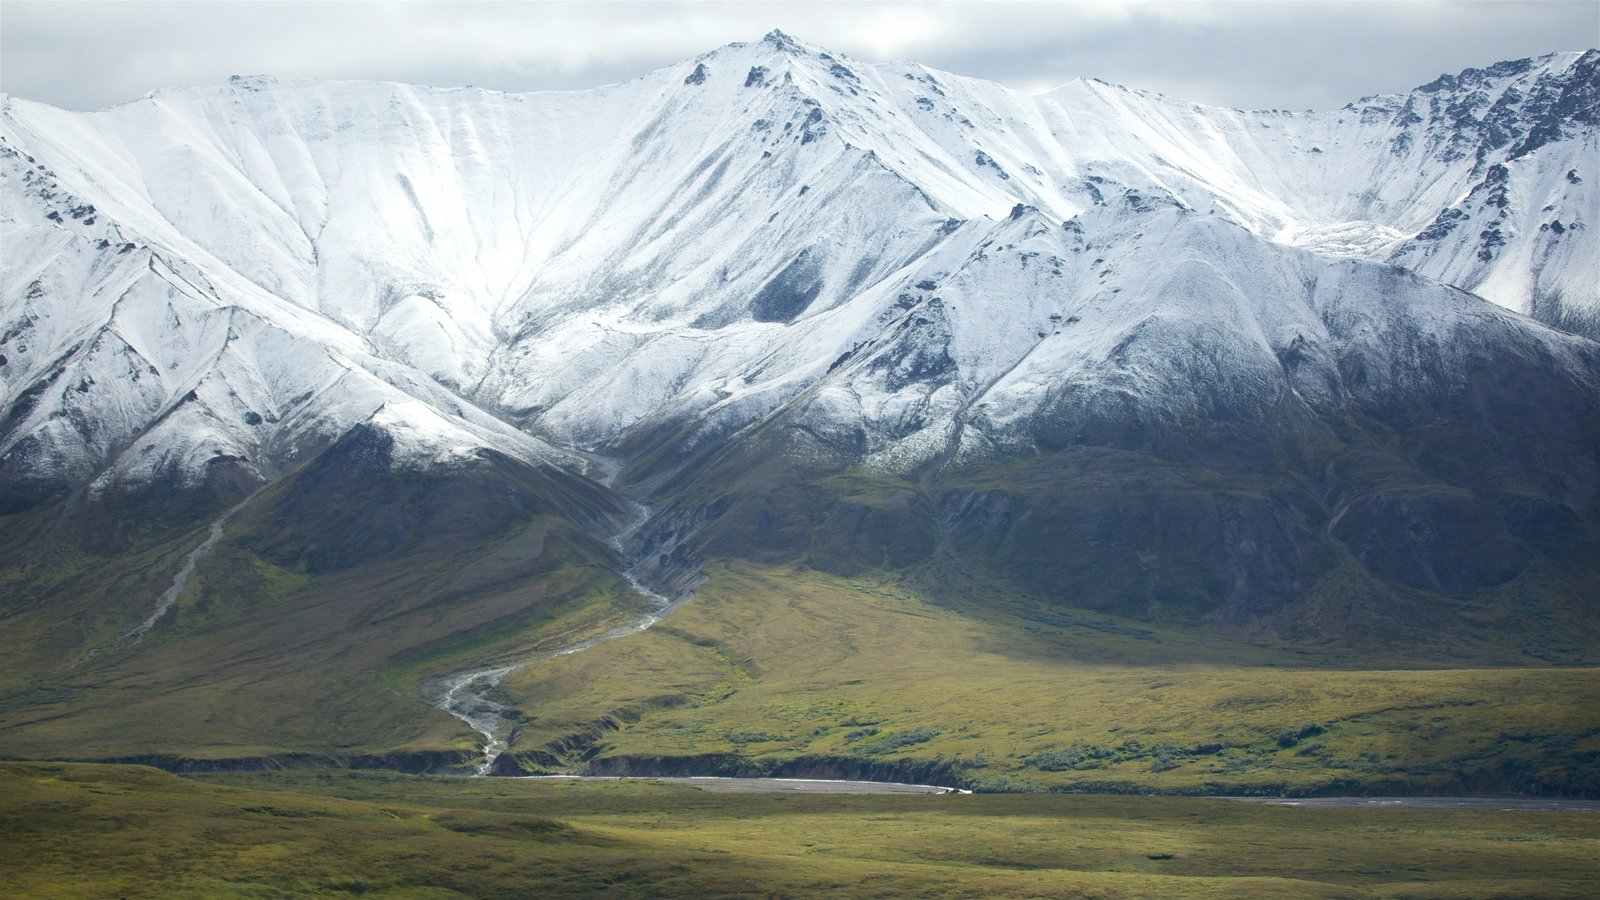 Denali National Park which includes tranquil scenes, snow and landscape views